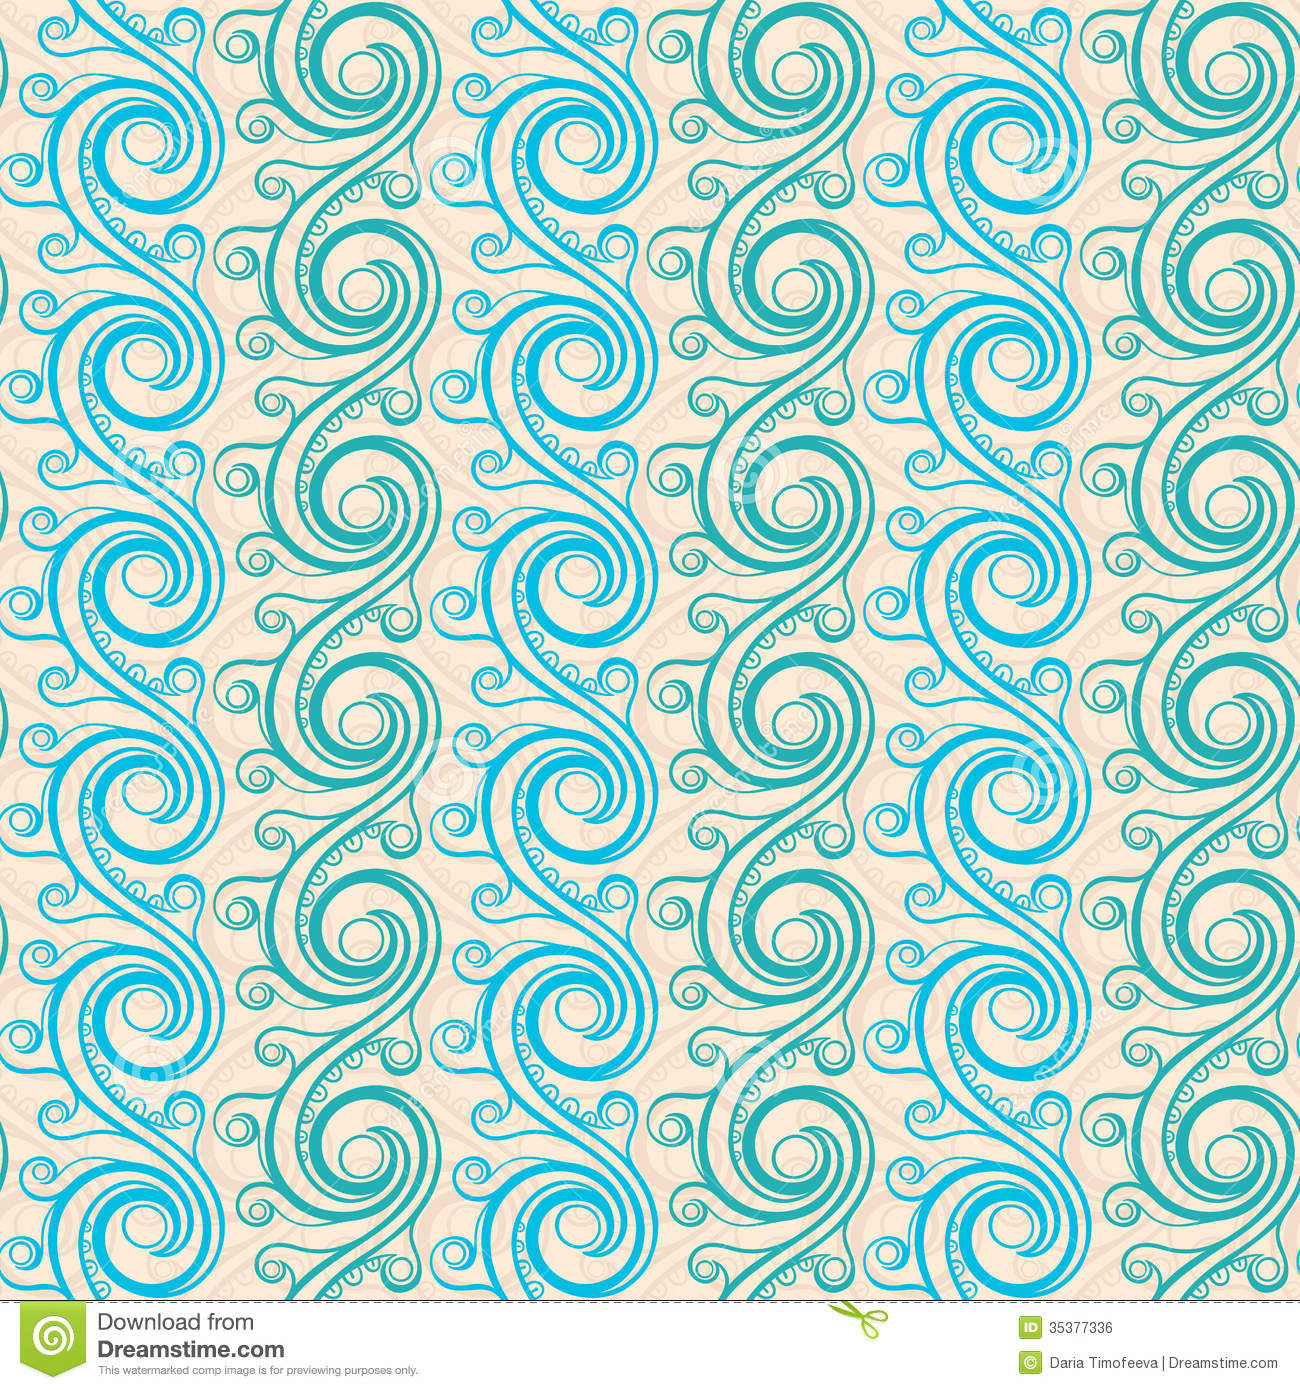 turquoise swirls design wallpapers - photo #20